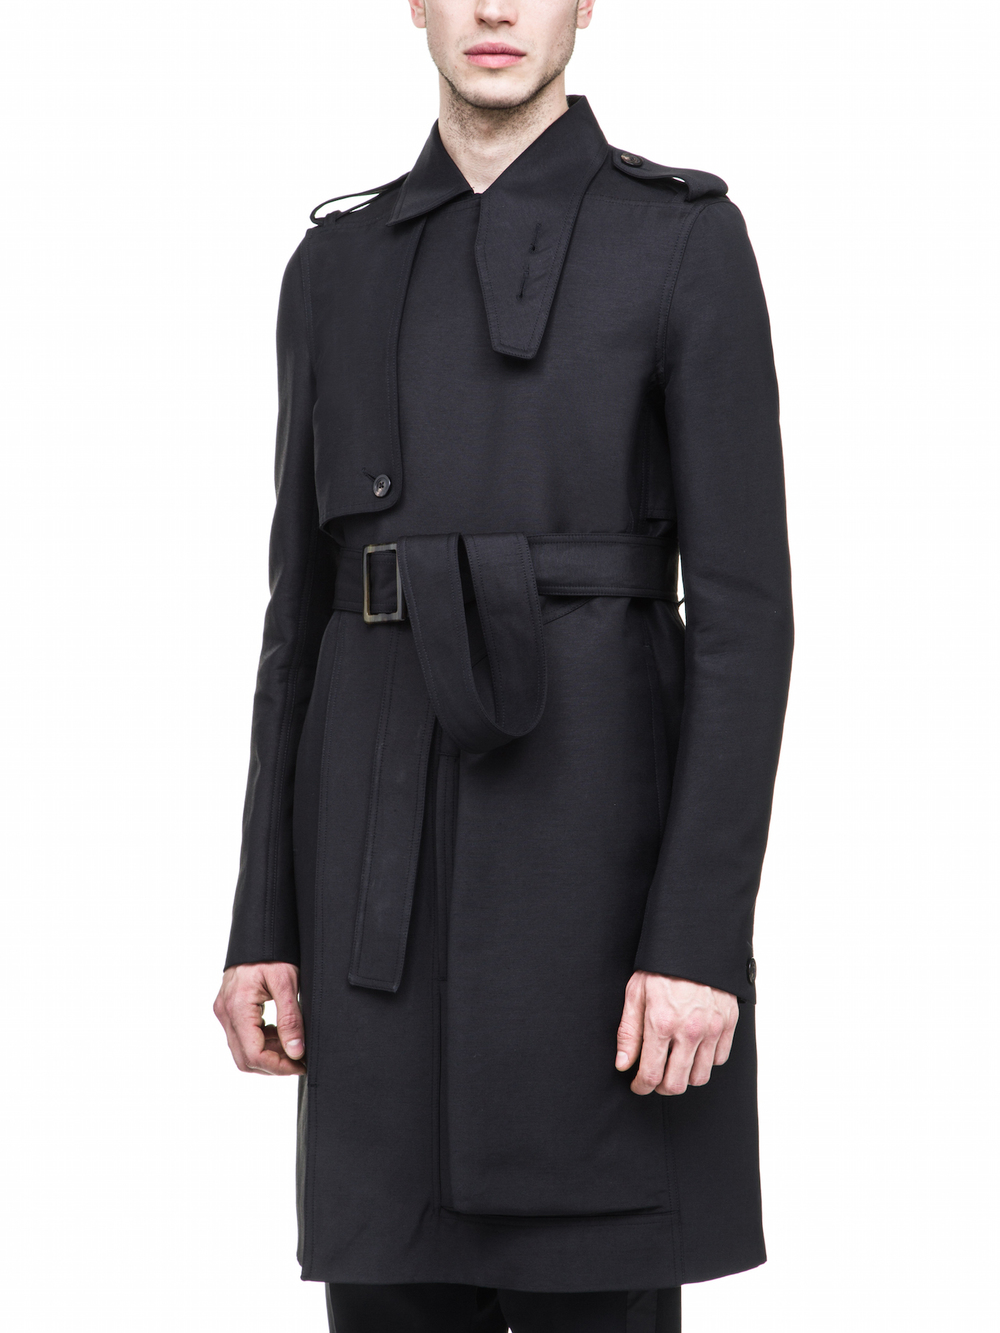 RICK OWENS FW17 CARGO TRENCH IN BLACK